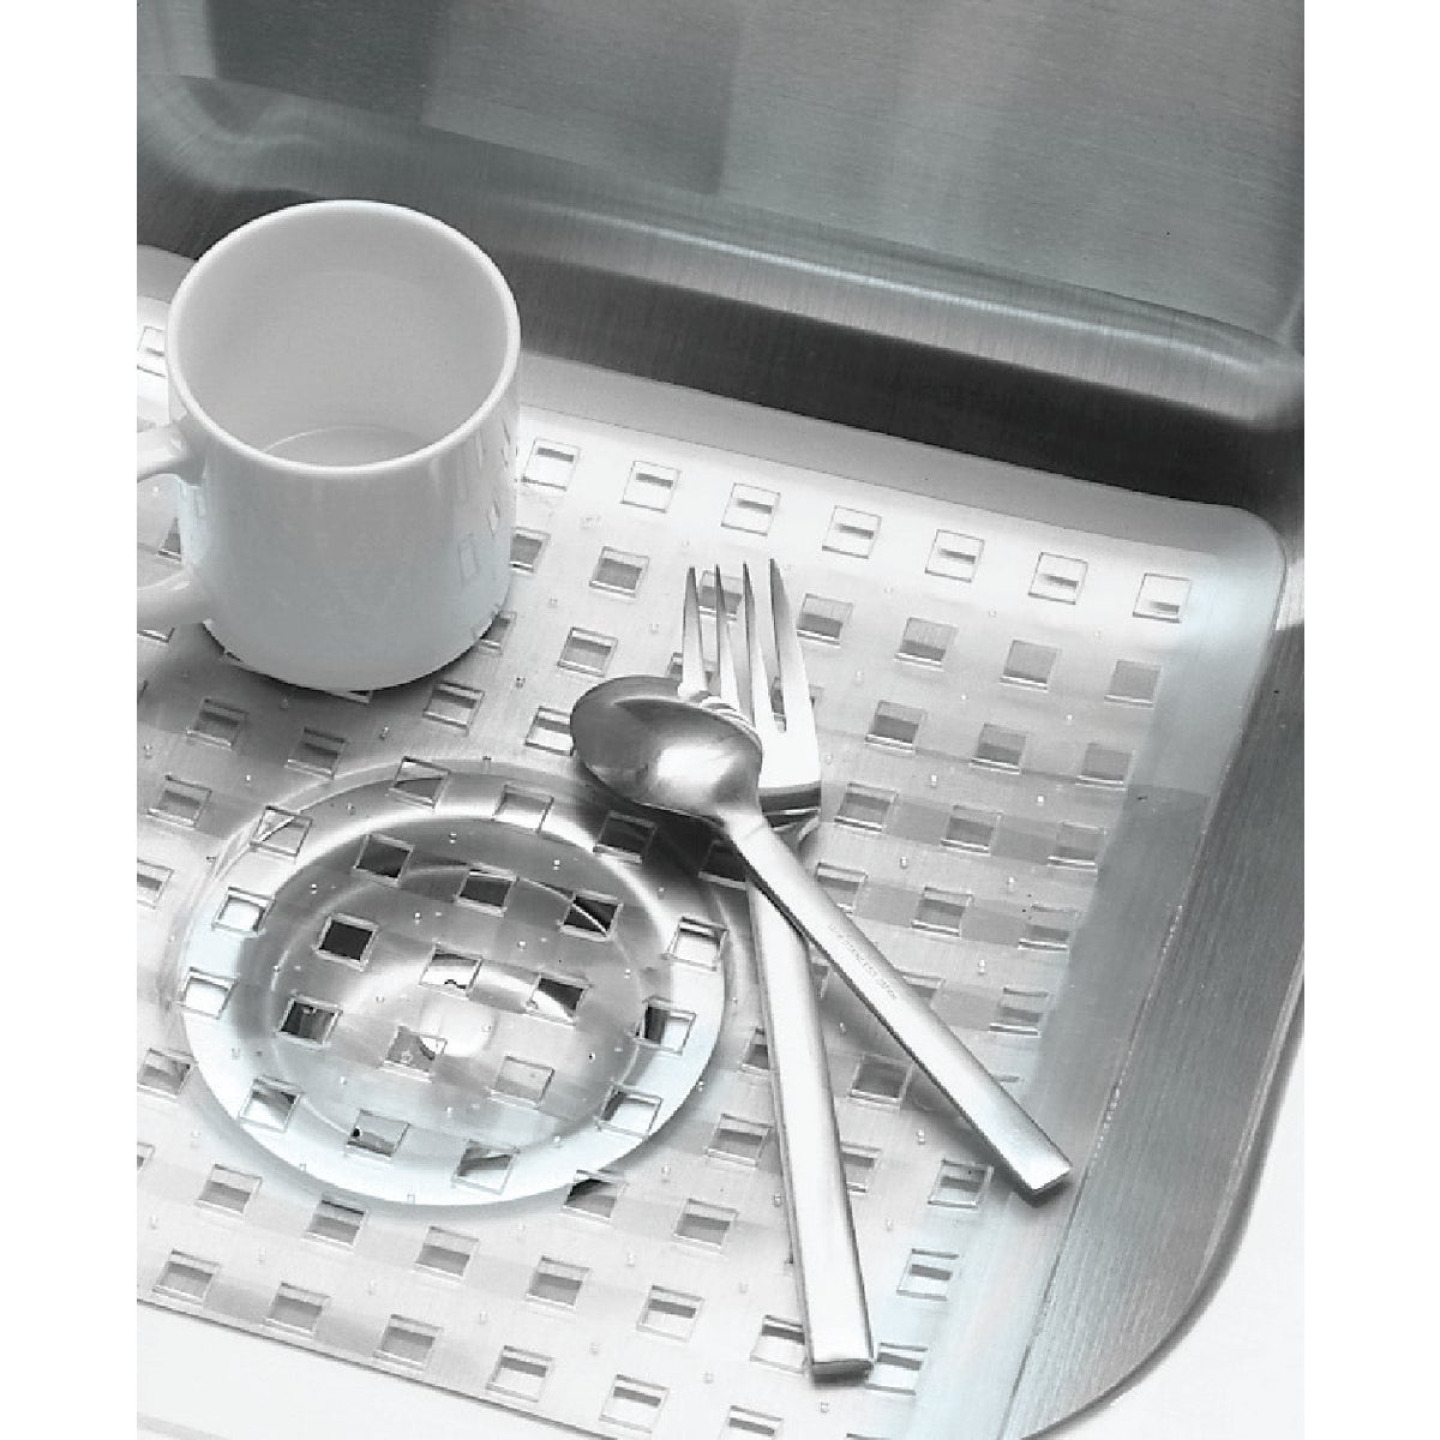 InterDesign Sinkworks 12.5 In. x 16 In. Euro Sink Mat Image 2